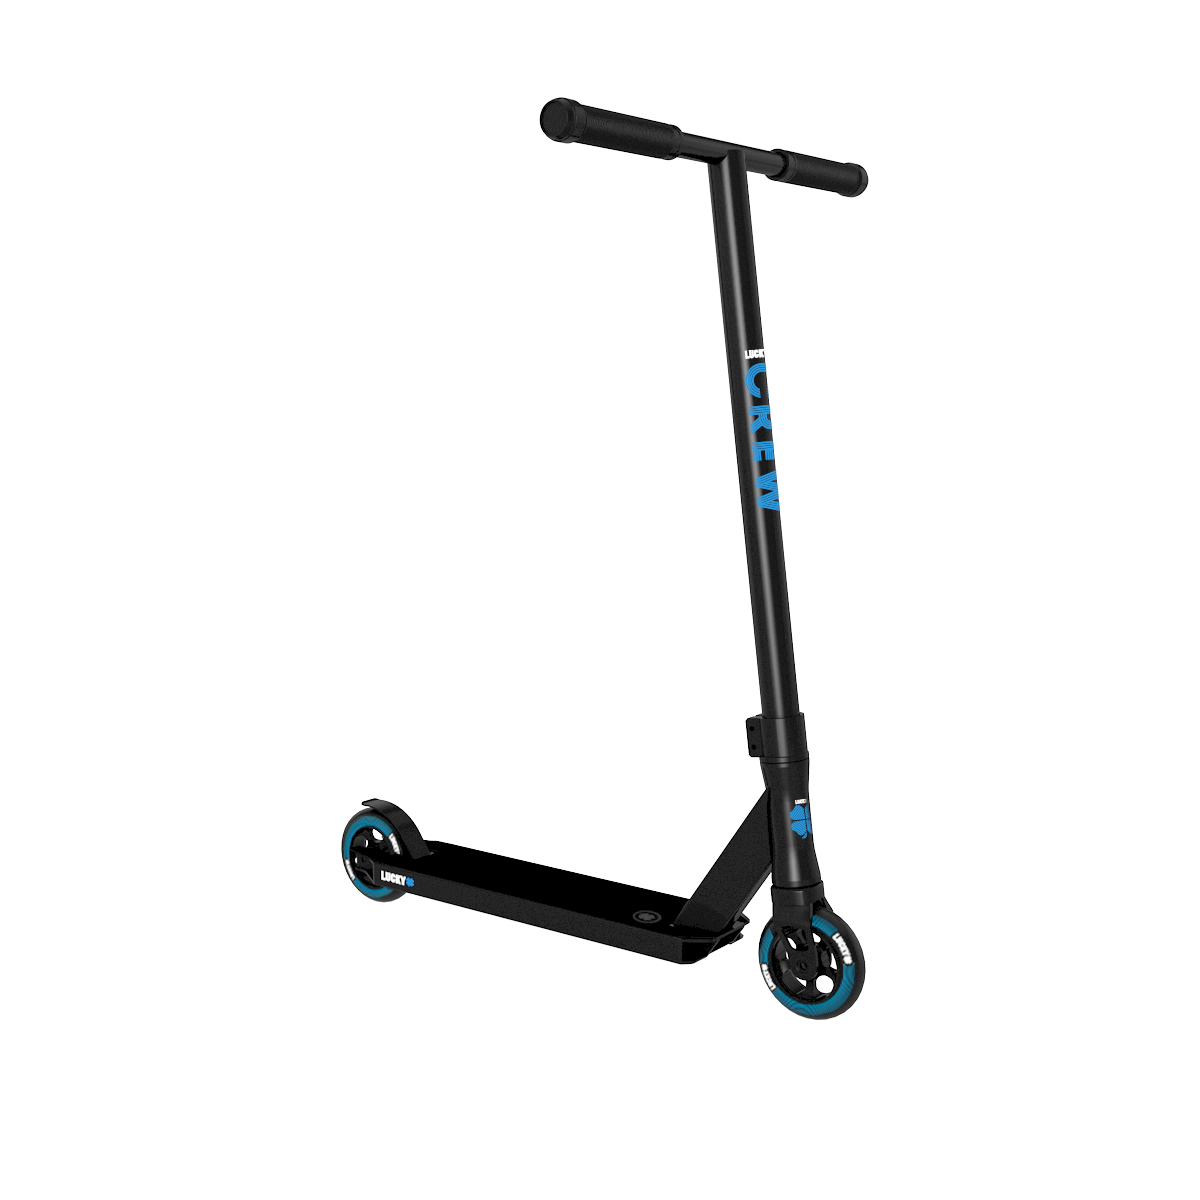 Scooter clipart kick scooter. Png image